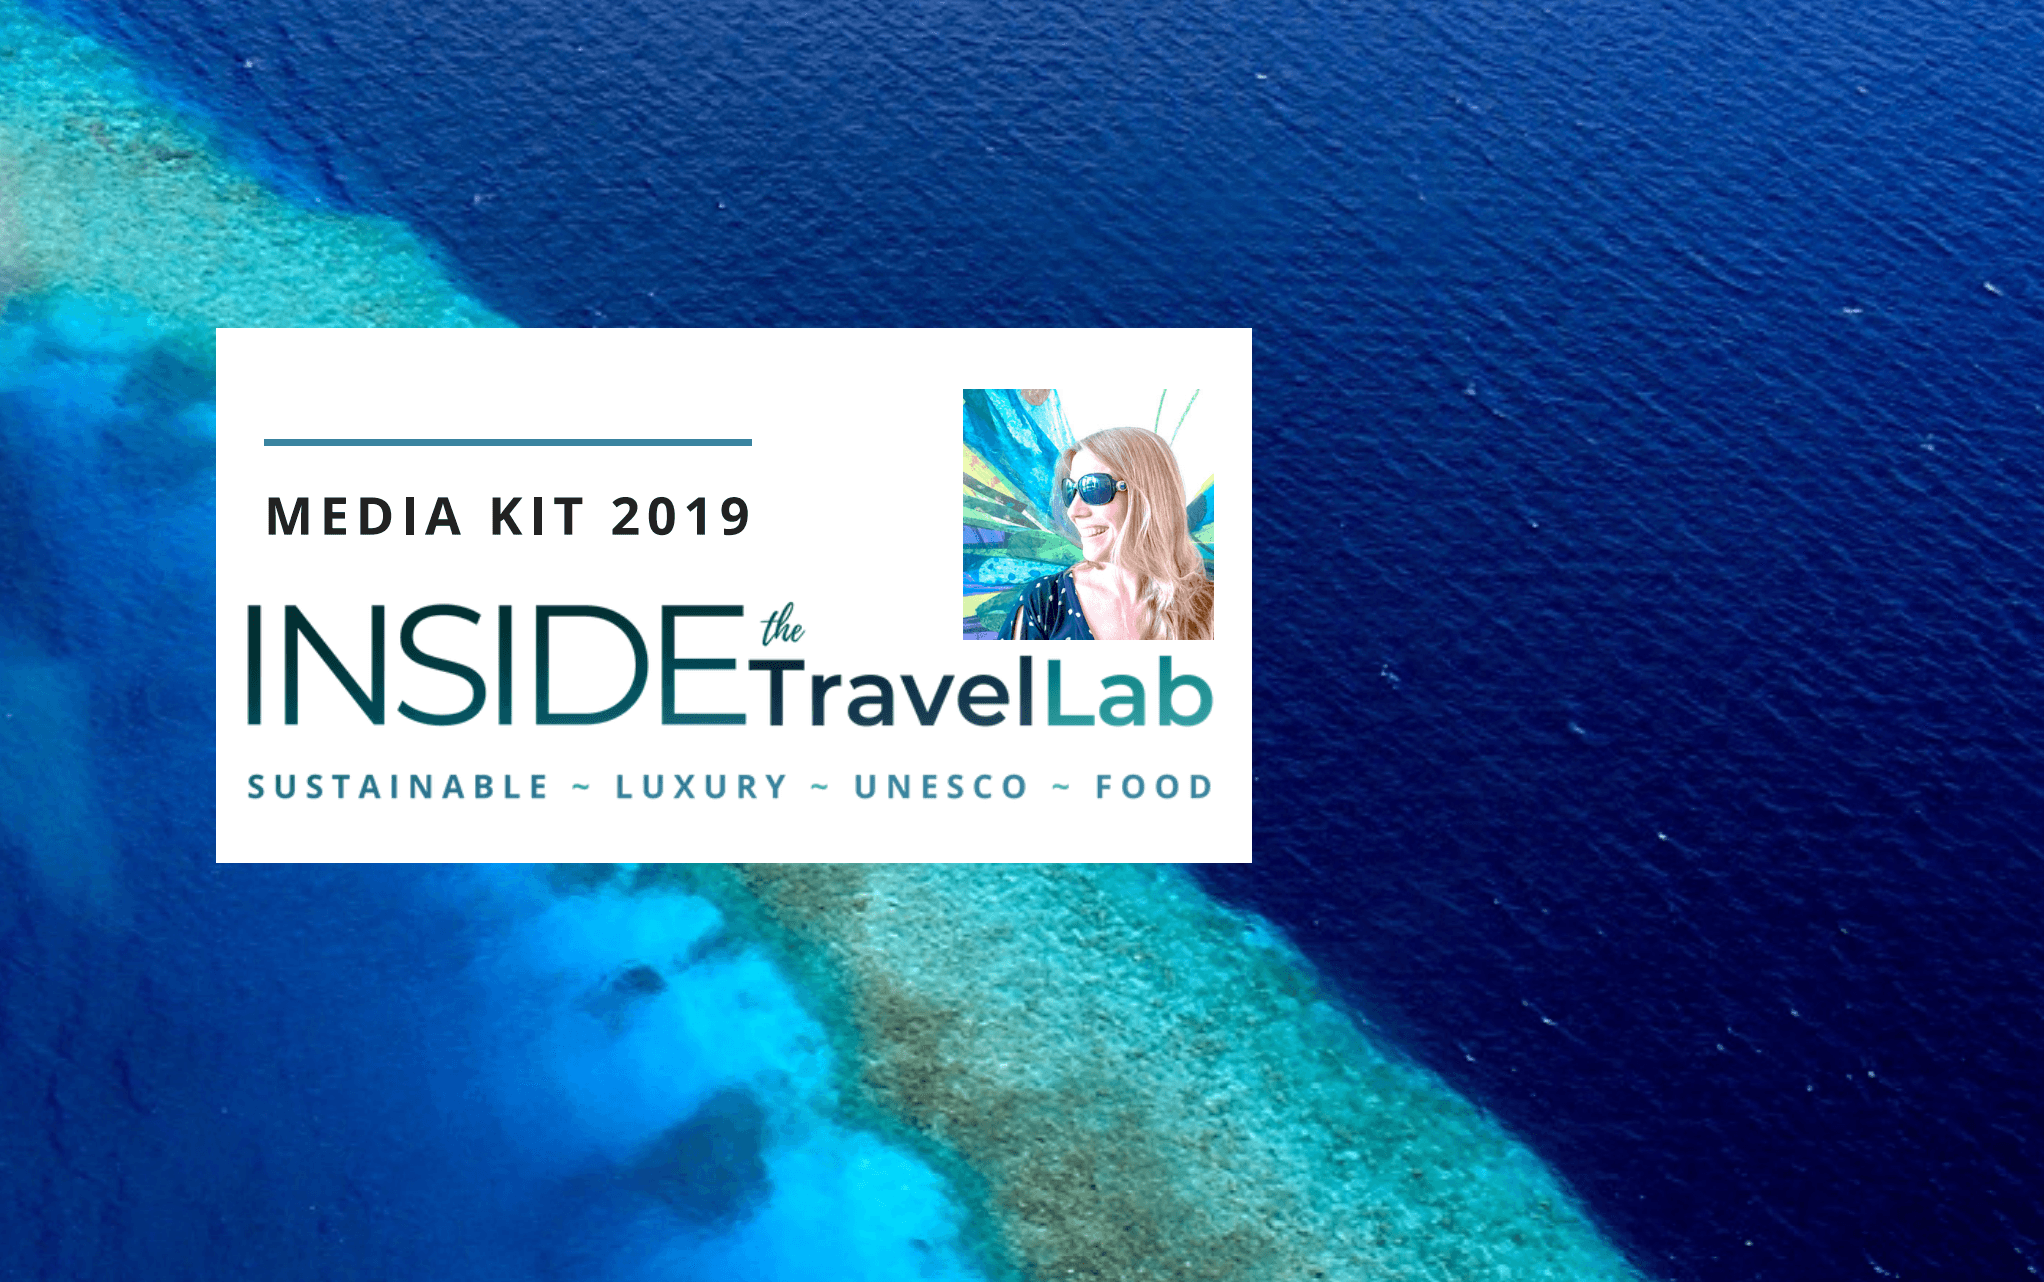 Inside the Travel Lab Media Kit 2019